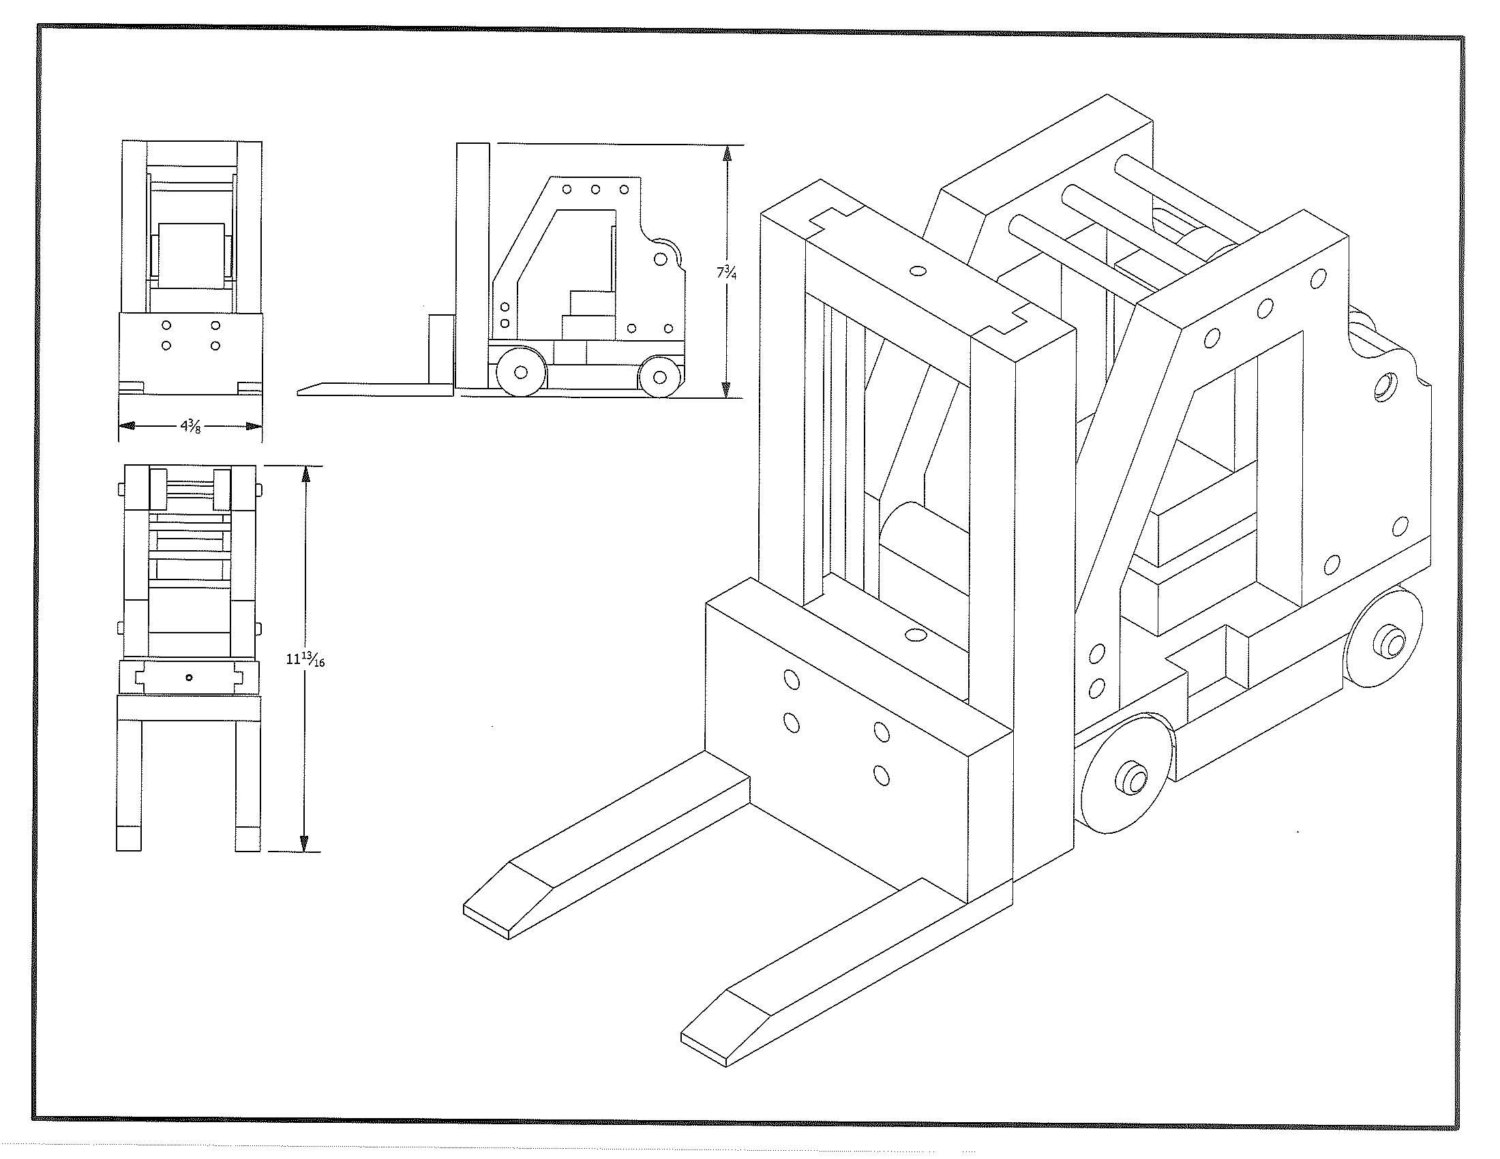 Forklift Drawing At Free For Personal Use Hyster Wiring Diagram E60 1500x1159 Toy Plan From Allnaturaltoyplans On Etsy Studio